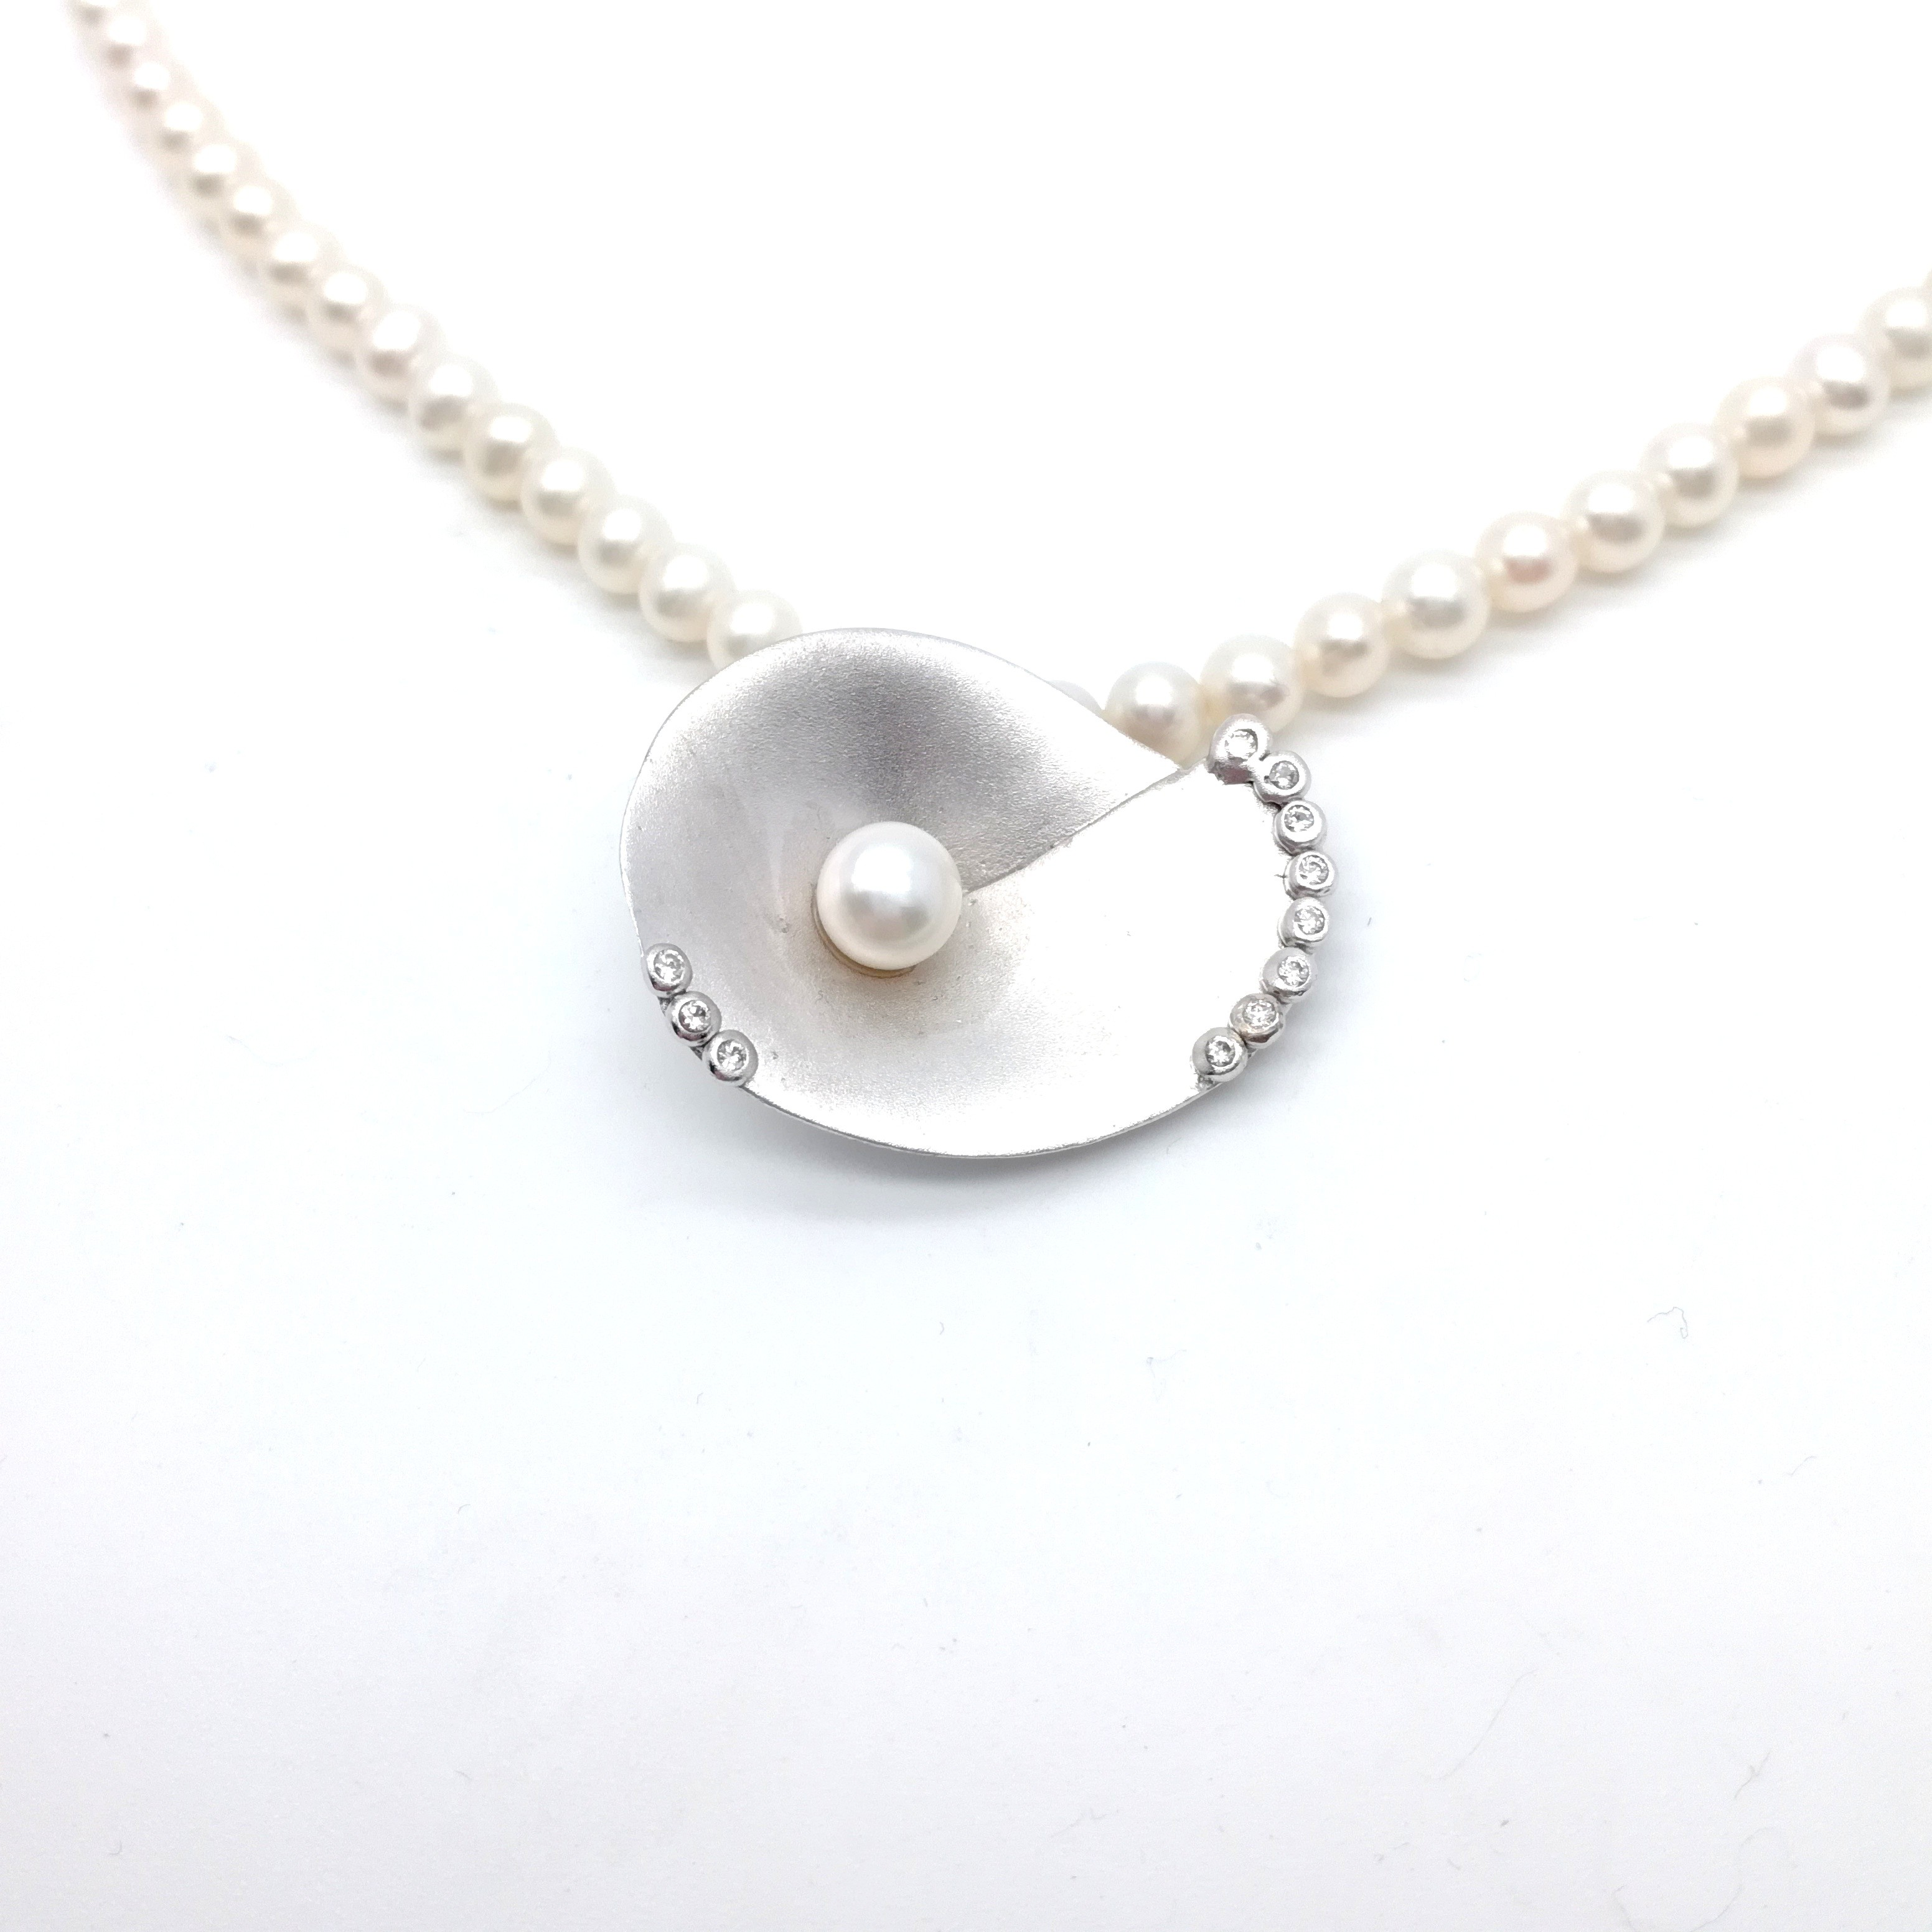 Silver necklace 925 rhodium plated with pearl and synthetic stones